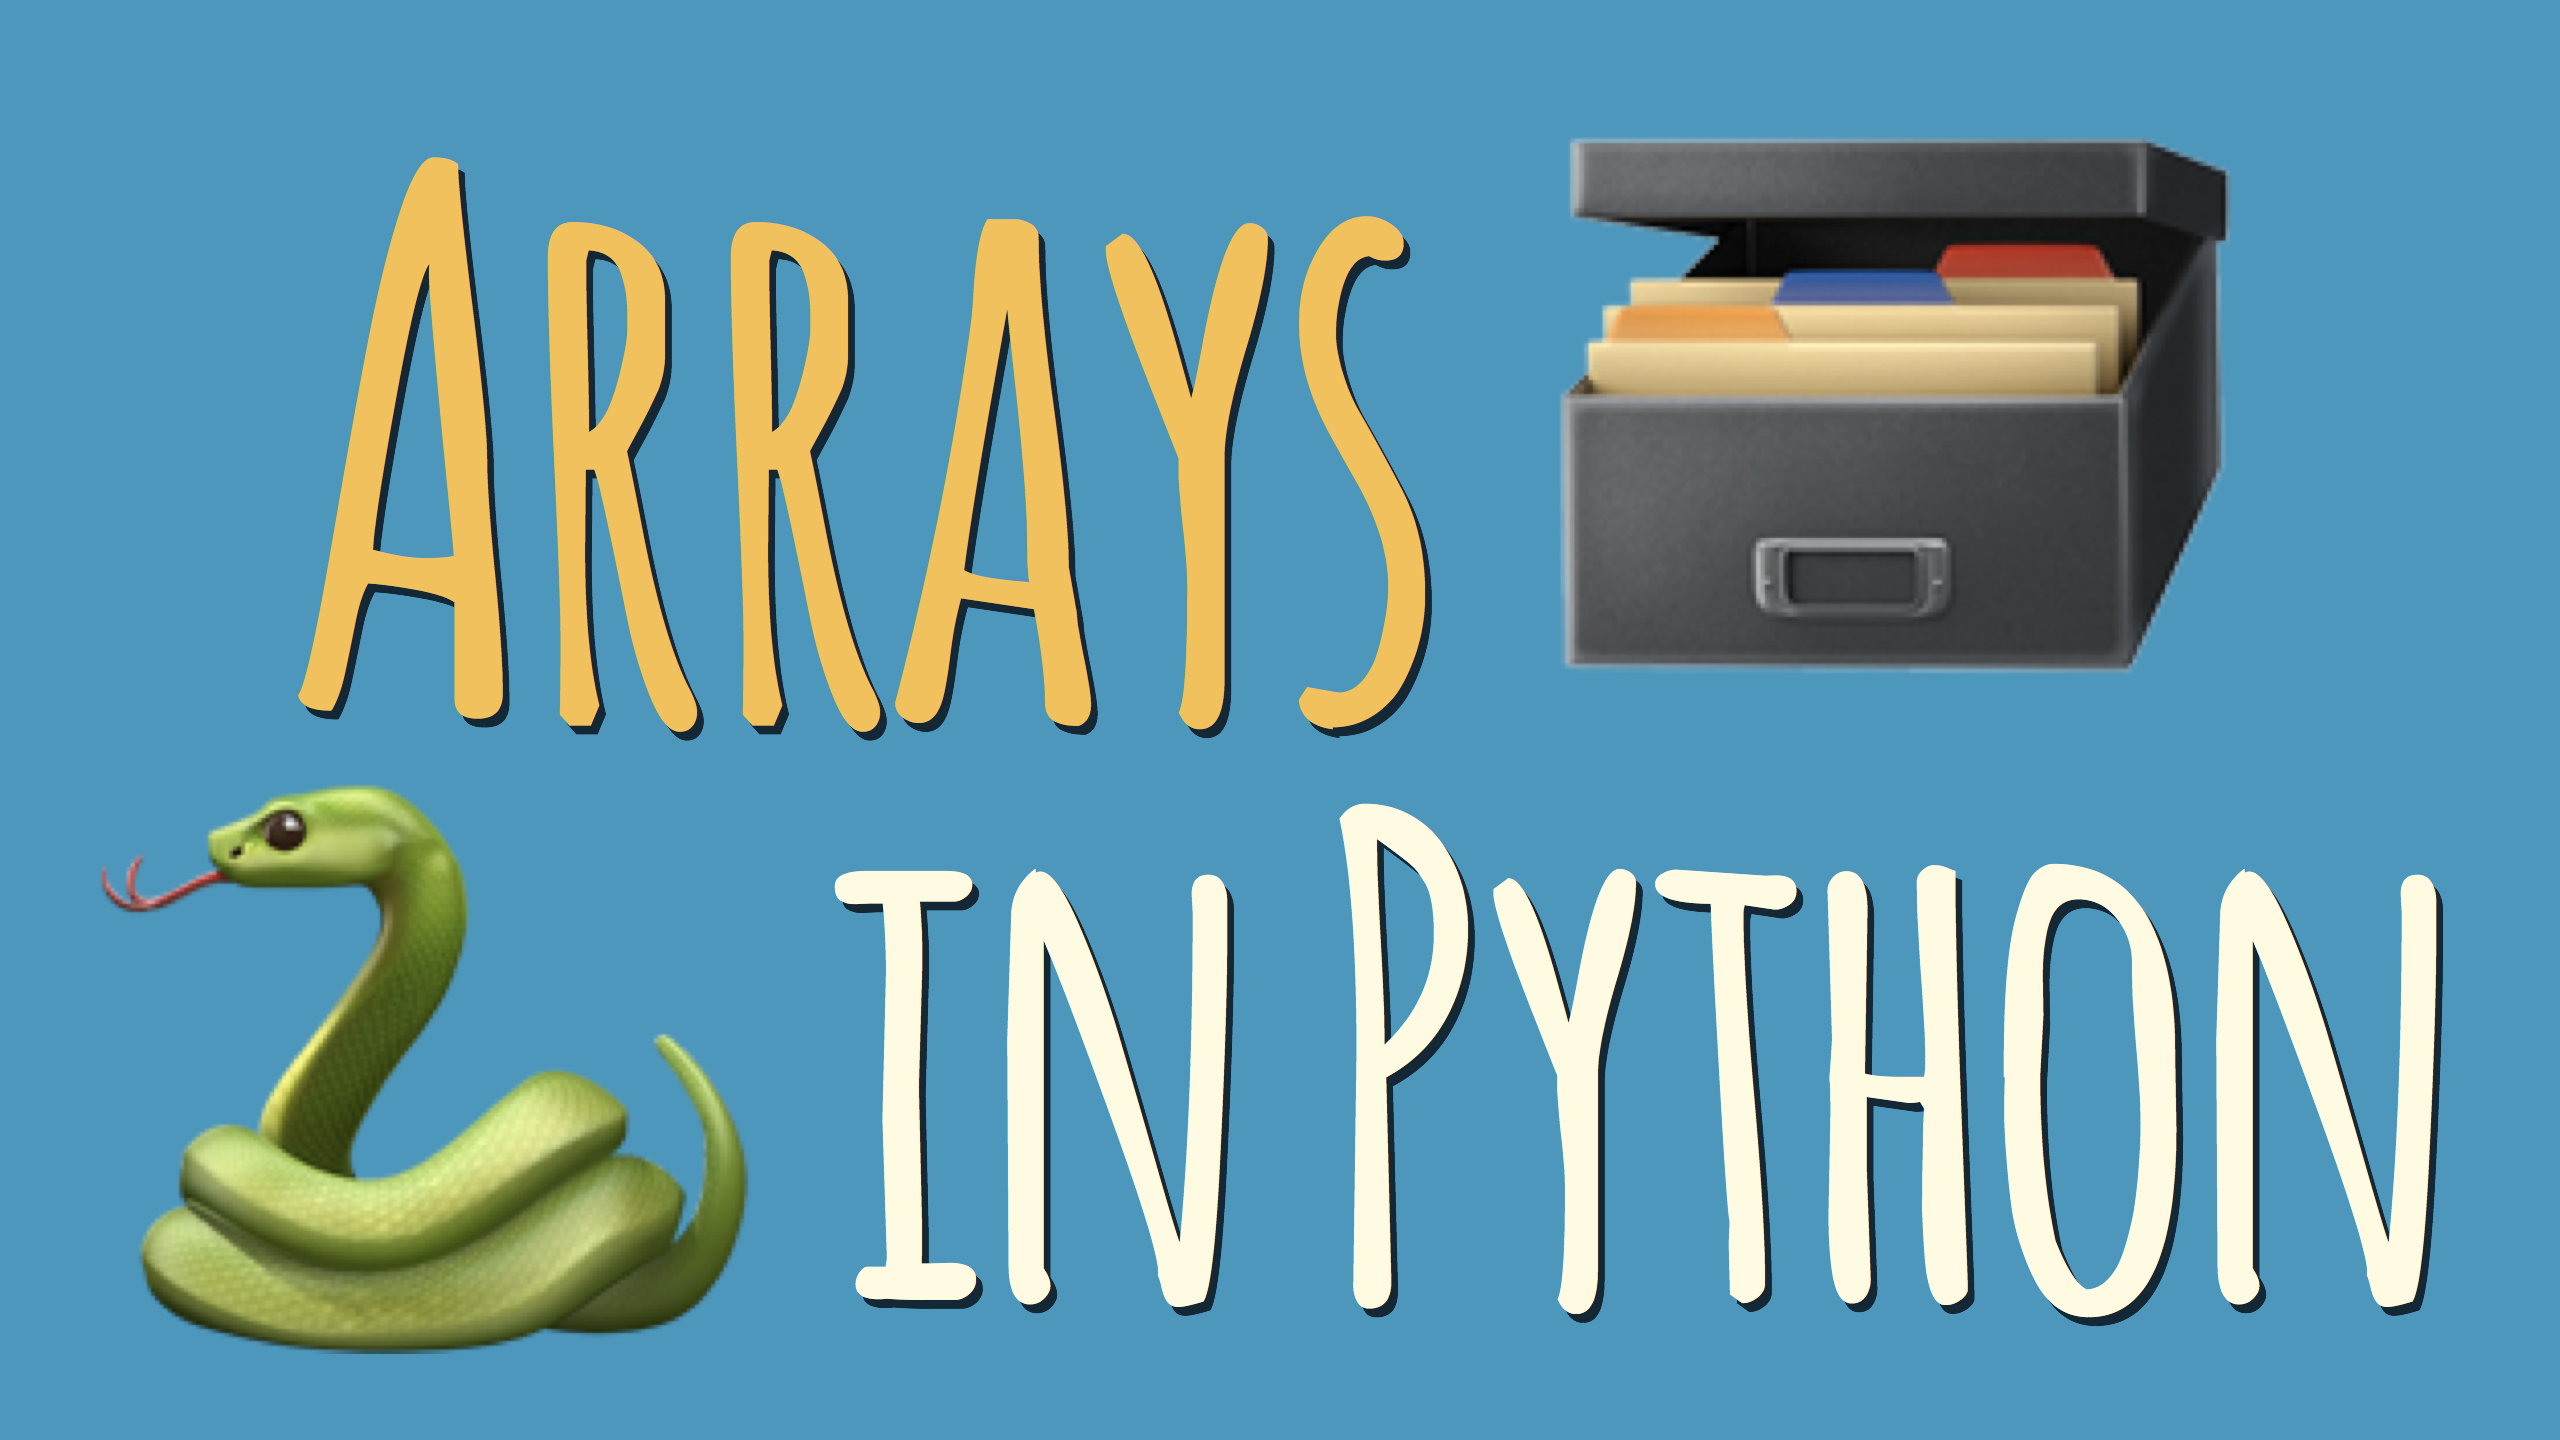 make empty array python